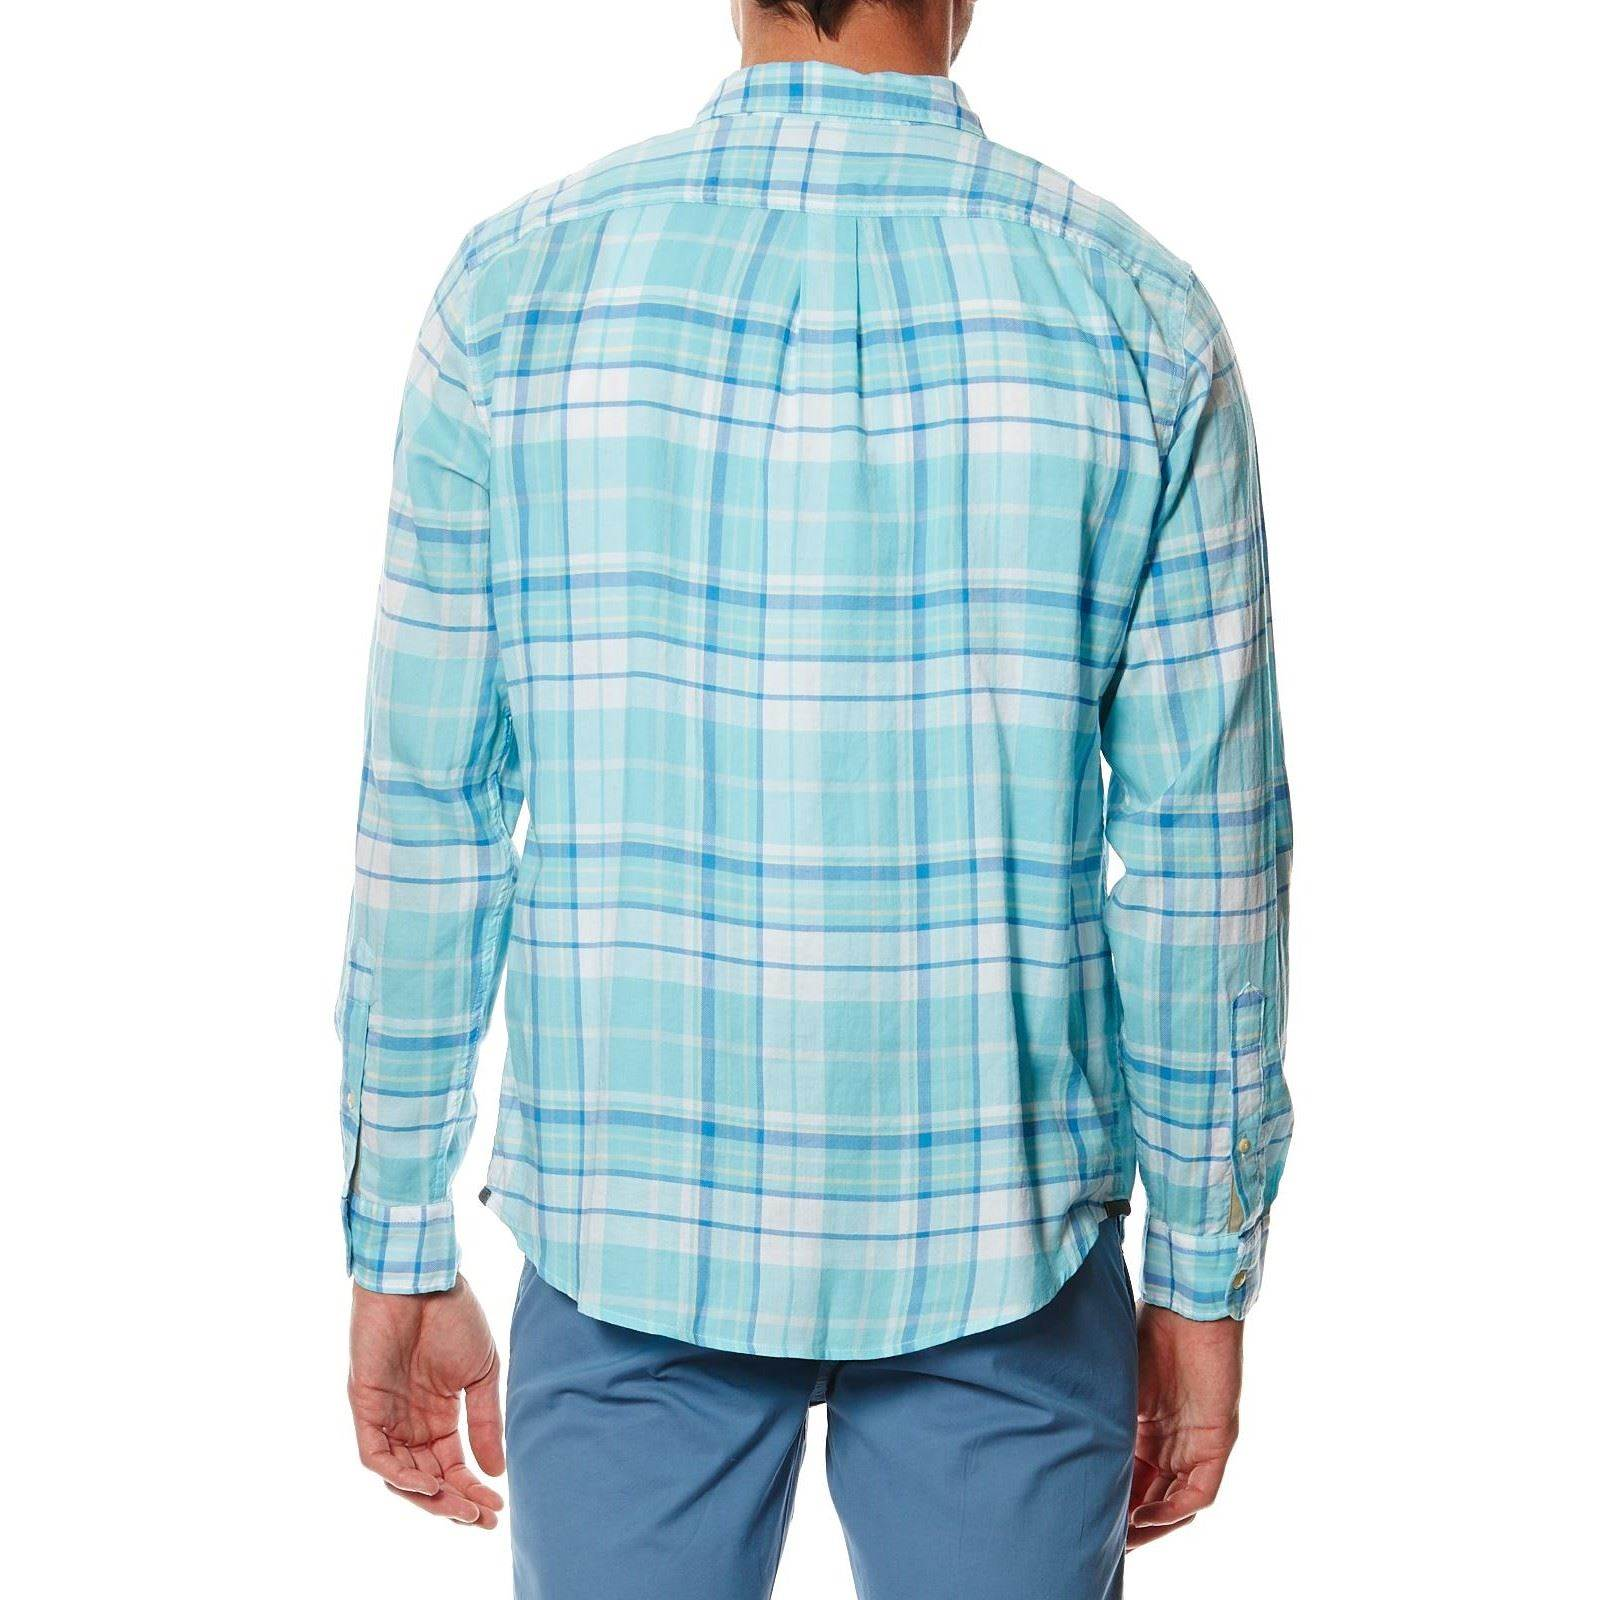 Dockers wrinkle twill shirt camisa azul brandalley for Dockers wrinkle free shirts